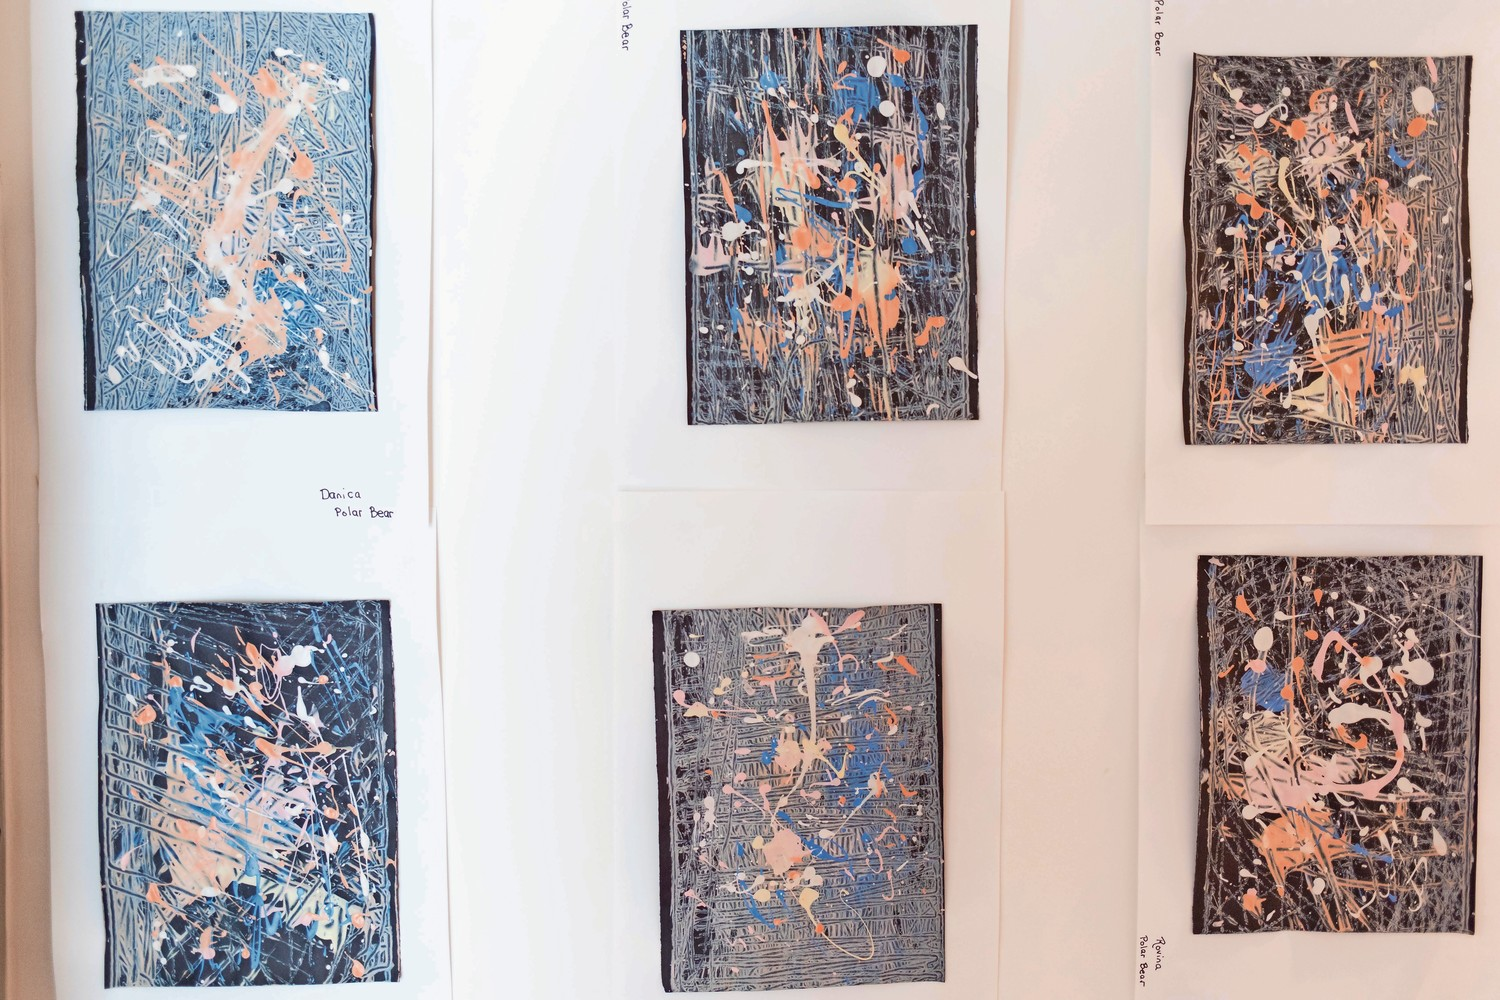 The painter Jackson Pollock was a primary inspiration for students at Bedrock Preschool. Students incorporated Pollock's drip painting technique into their own work, which is on display in the school's annual art gala.